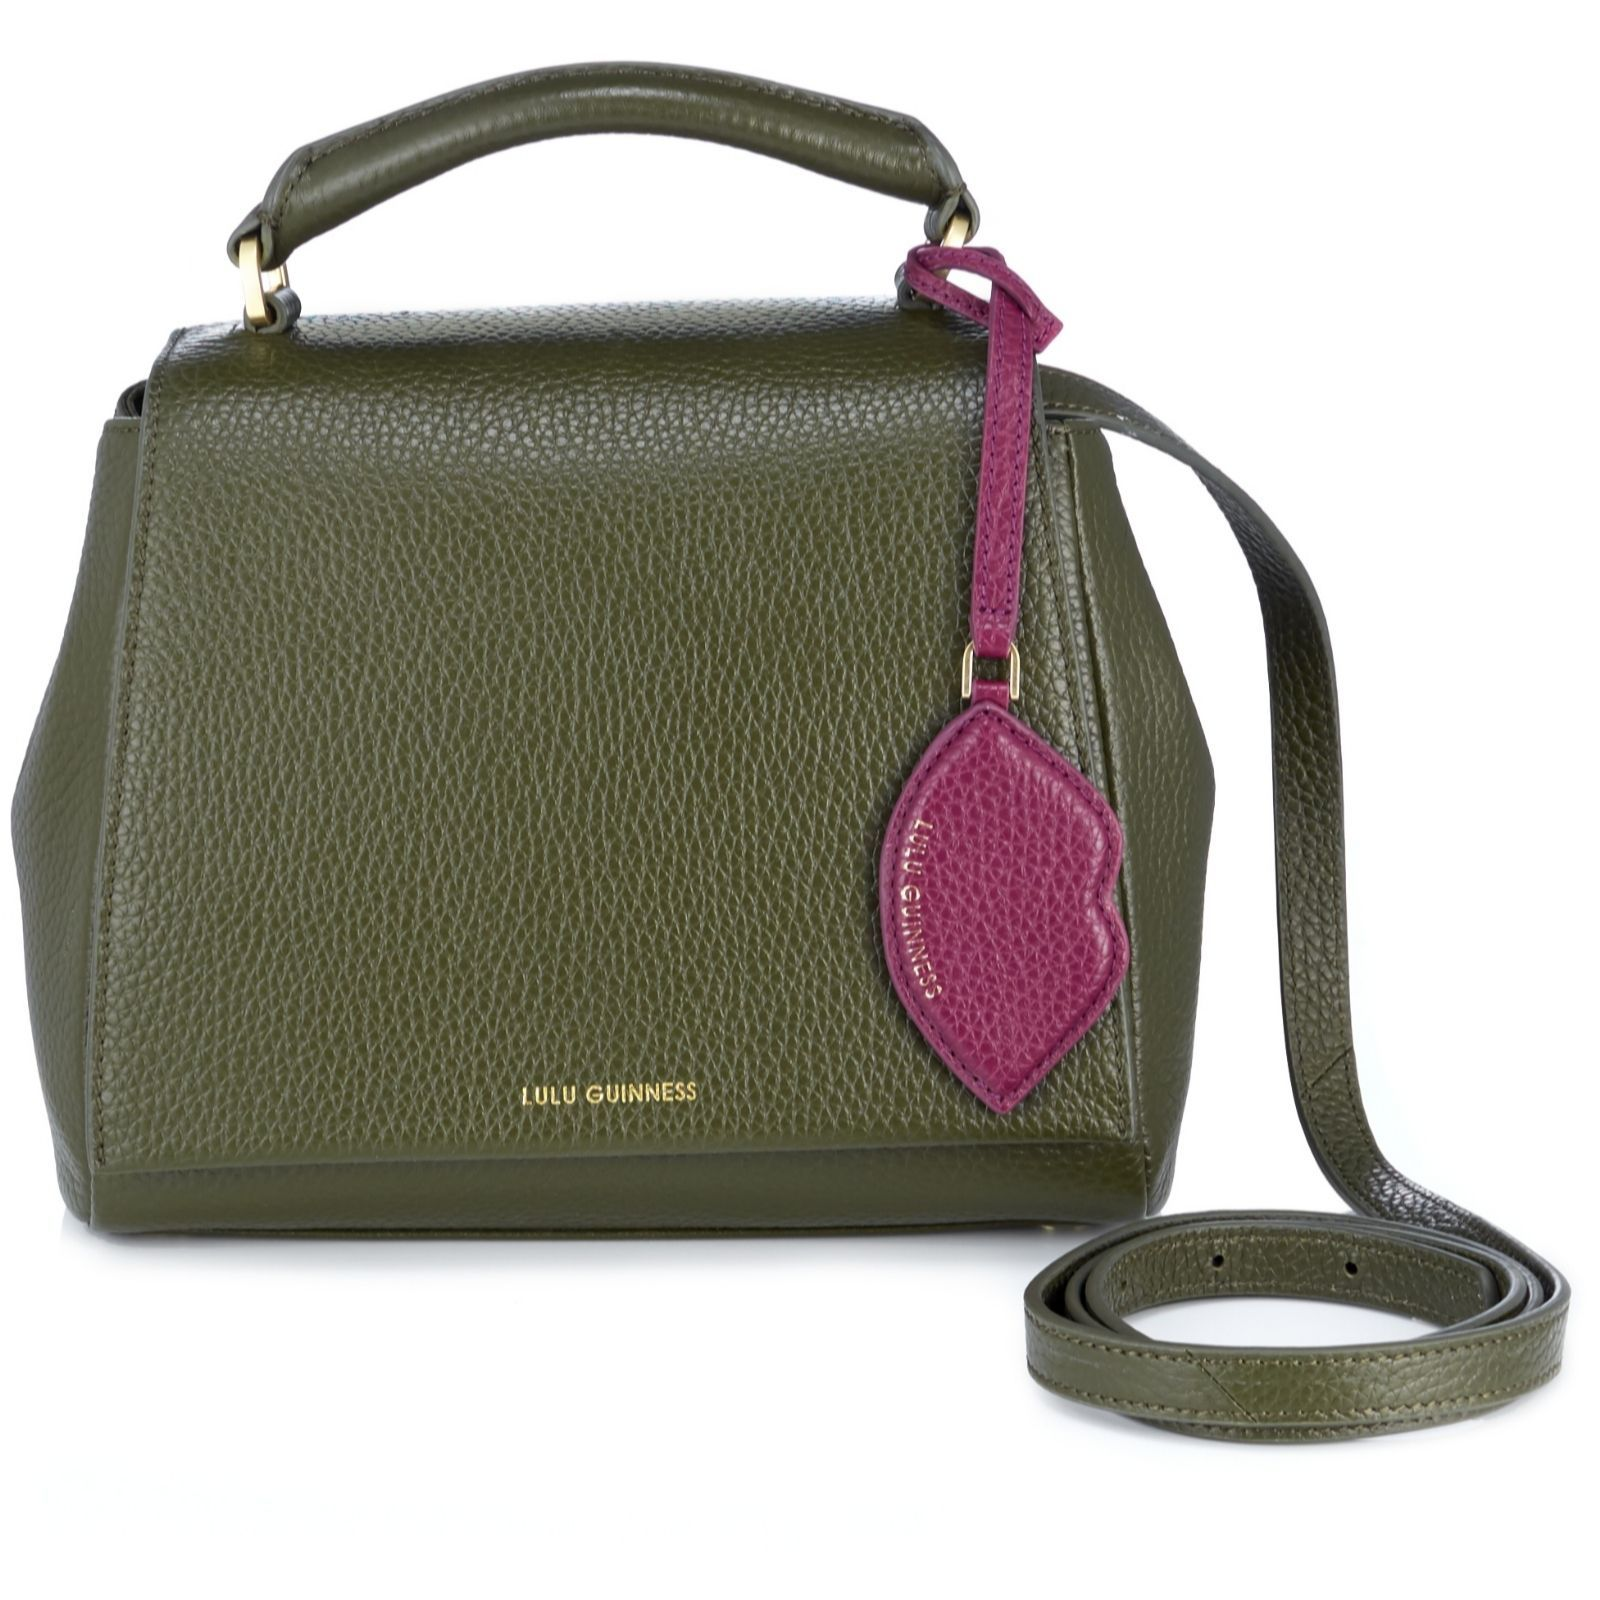 159601 Lulu Guinness Small Rita Soft Grain Leather Crossbody Bag With Lip Charm Qvc Price 318 00 The Handbag From Is Created